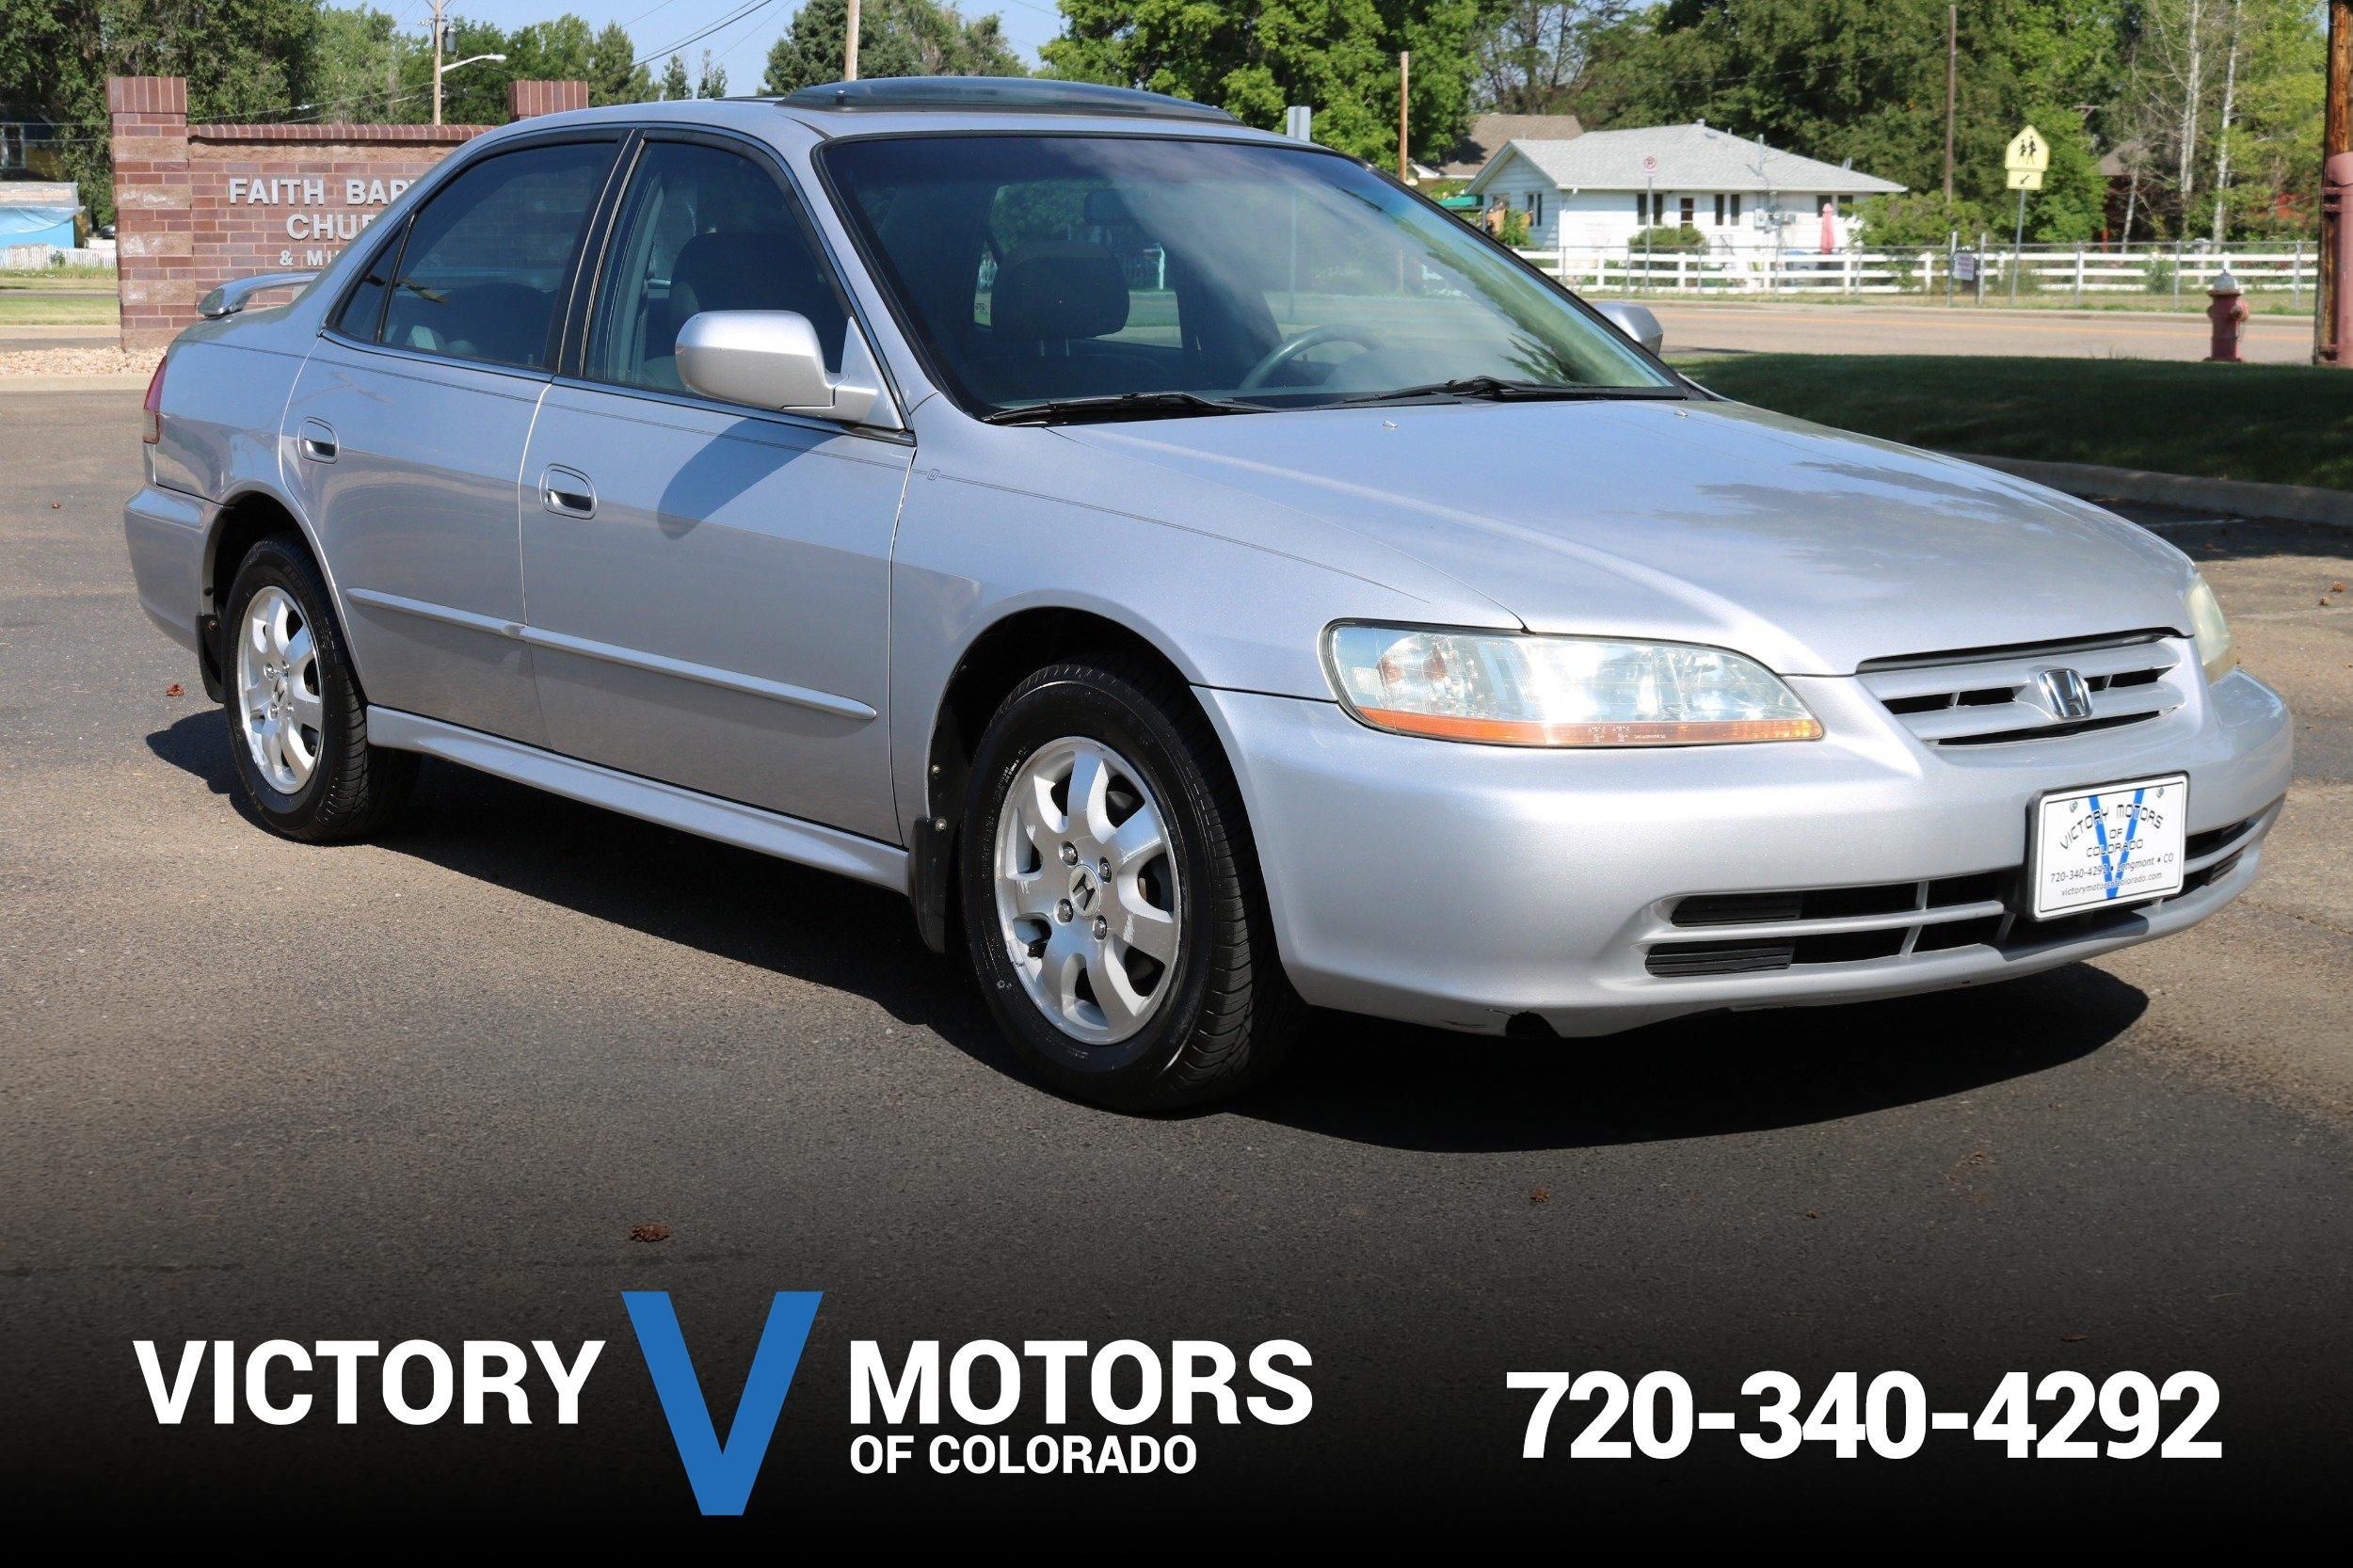 Exceptional 2001 Honda Accord EX W/Leather